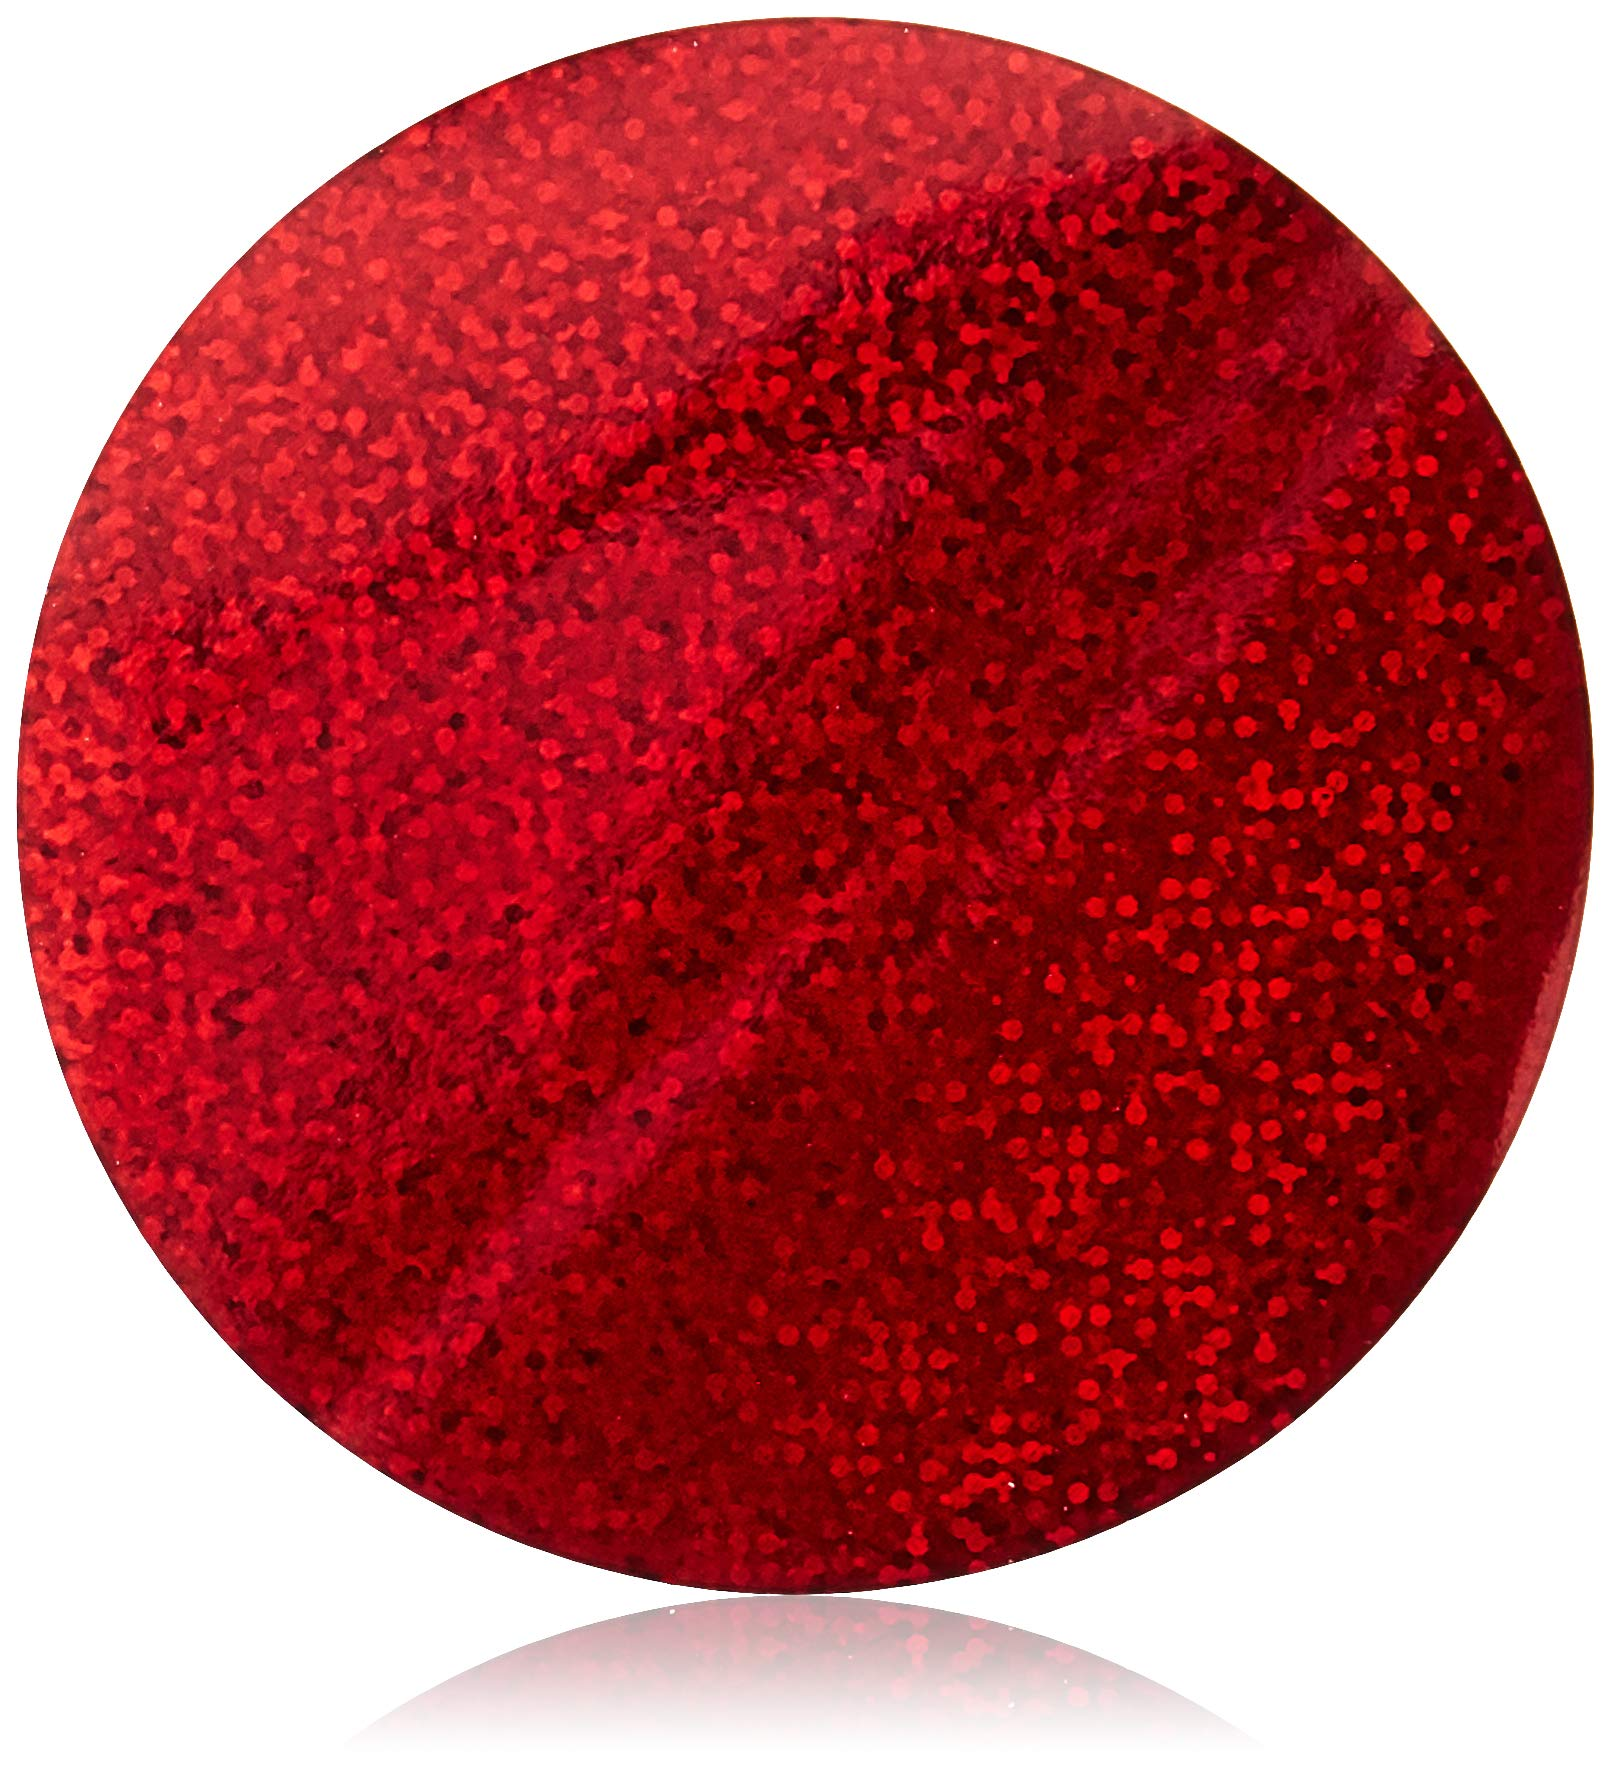 Mettoo Red Holographic Sparkle Body Foil Festival Pro, 1000 Count